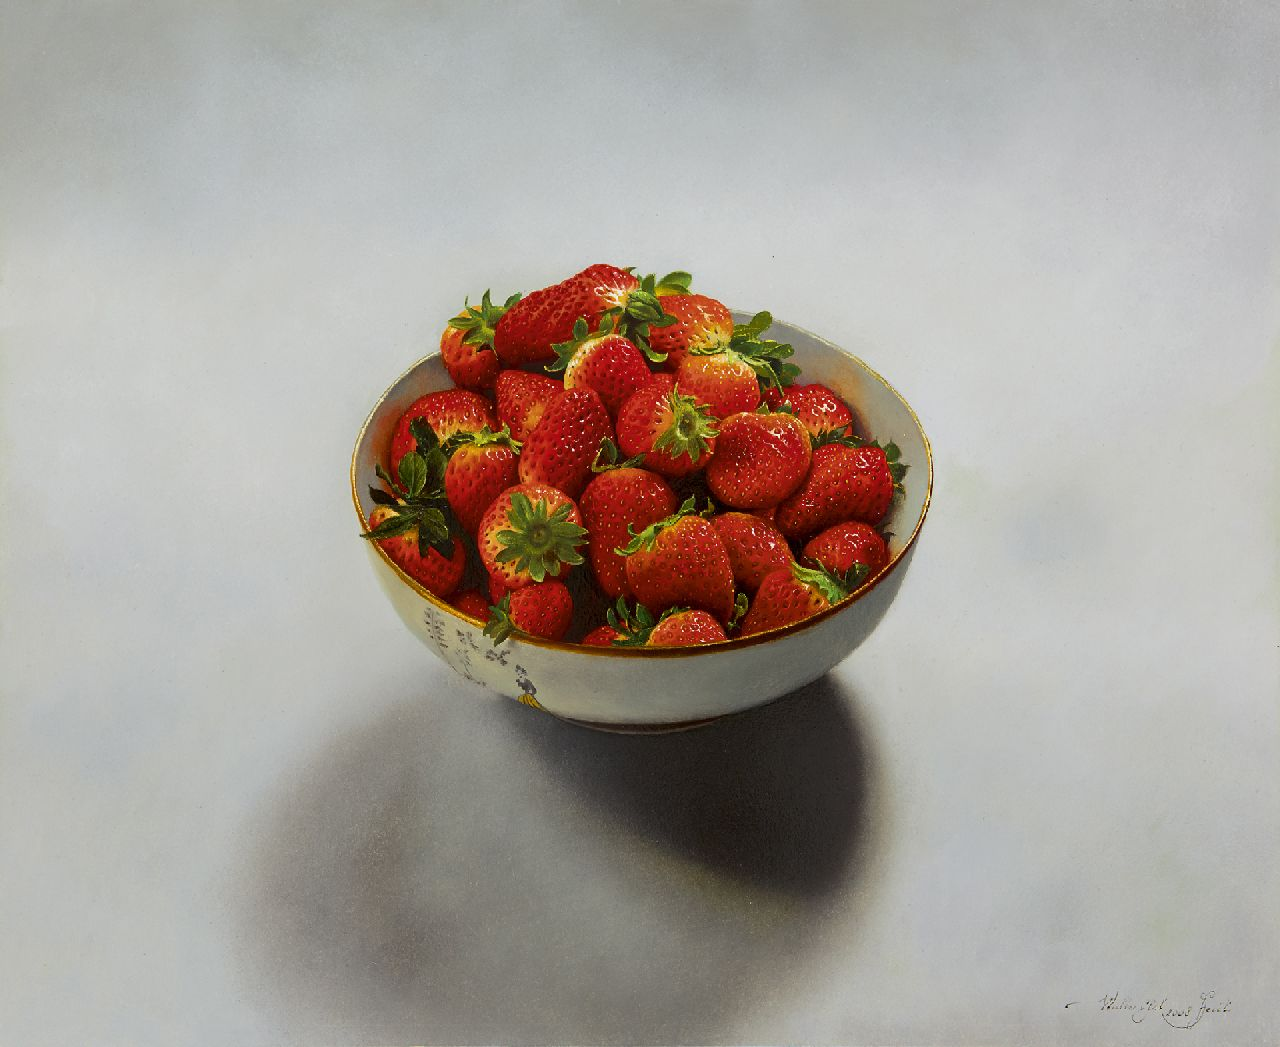 Elst W.  | Walter Elst, Strawberries in a bowl, oil on panel 33.0 x 40.0 cm, signed l.r. and dated 2008